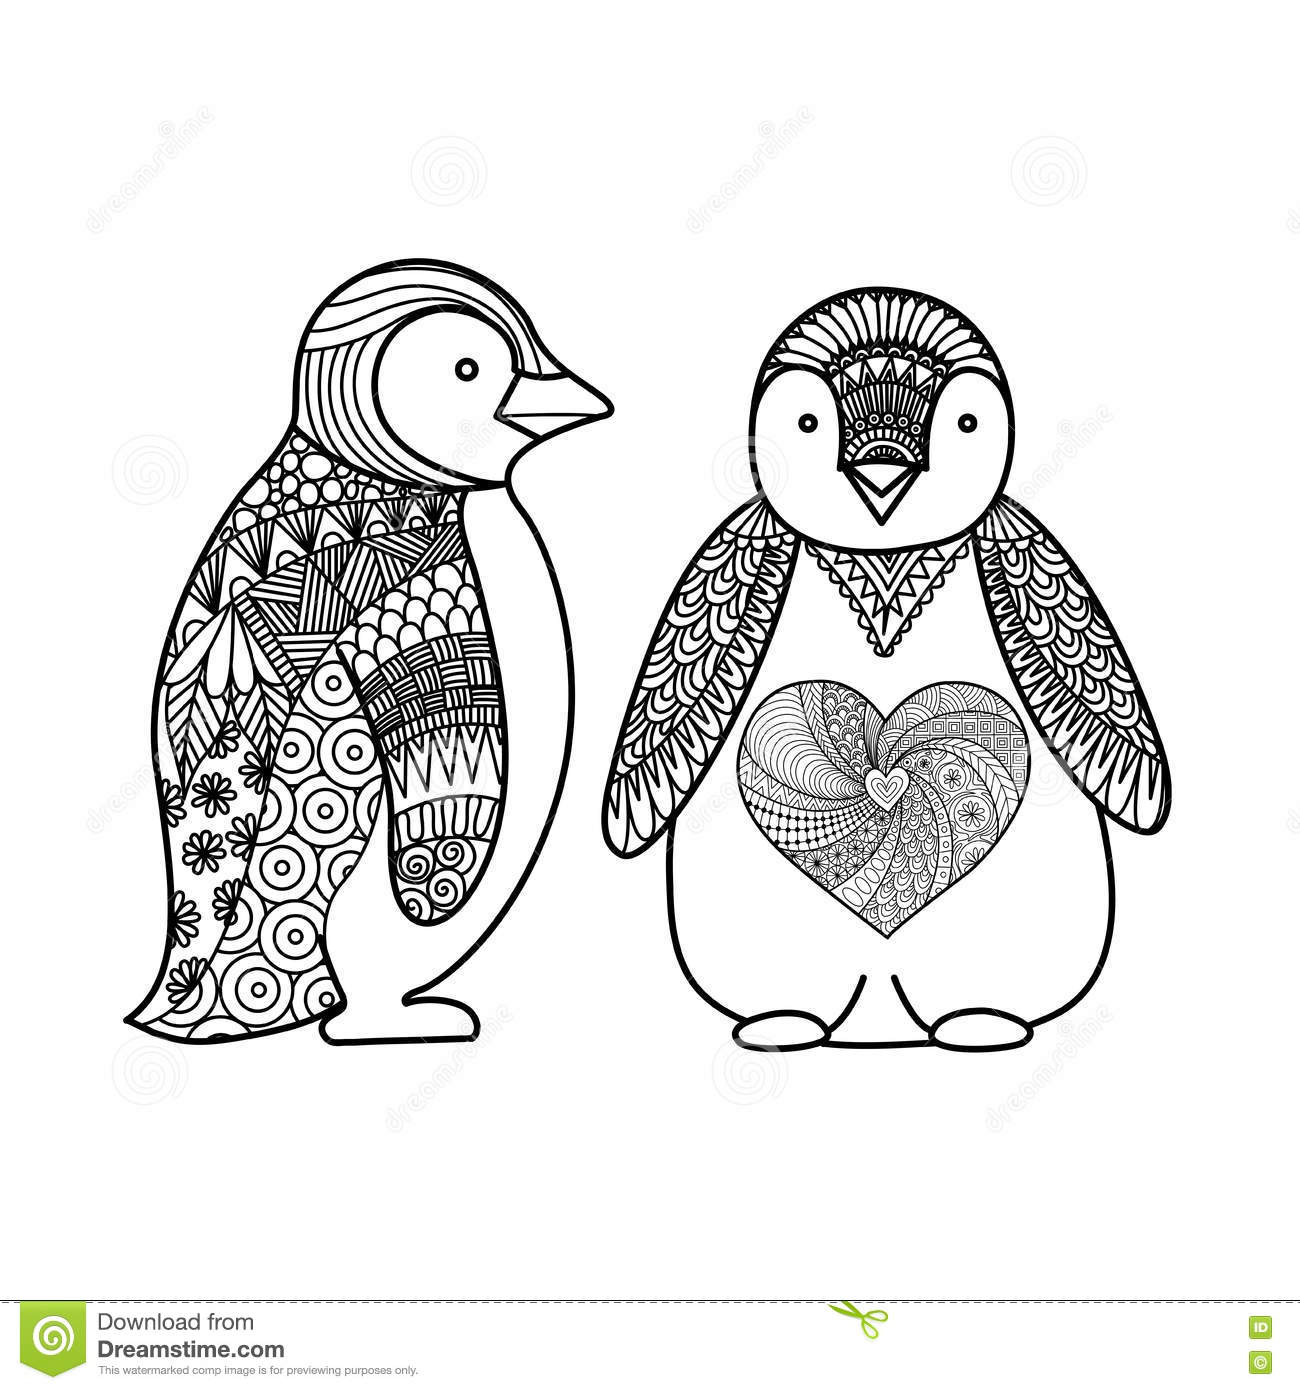 Igloo Coloring Page Penguins Cartoons, Ill...